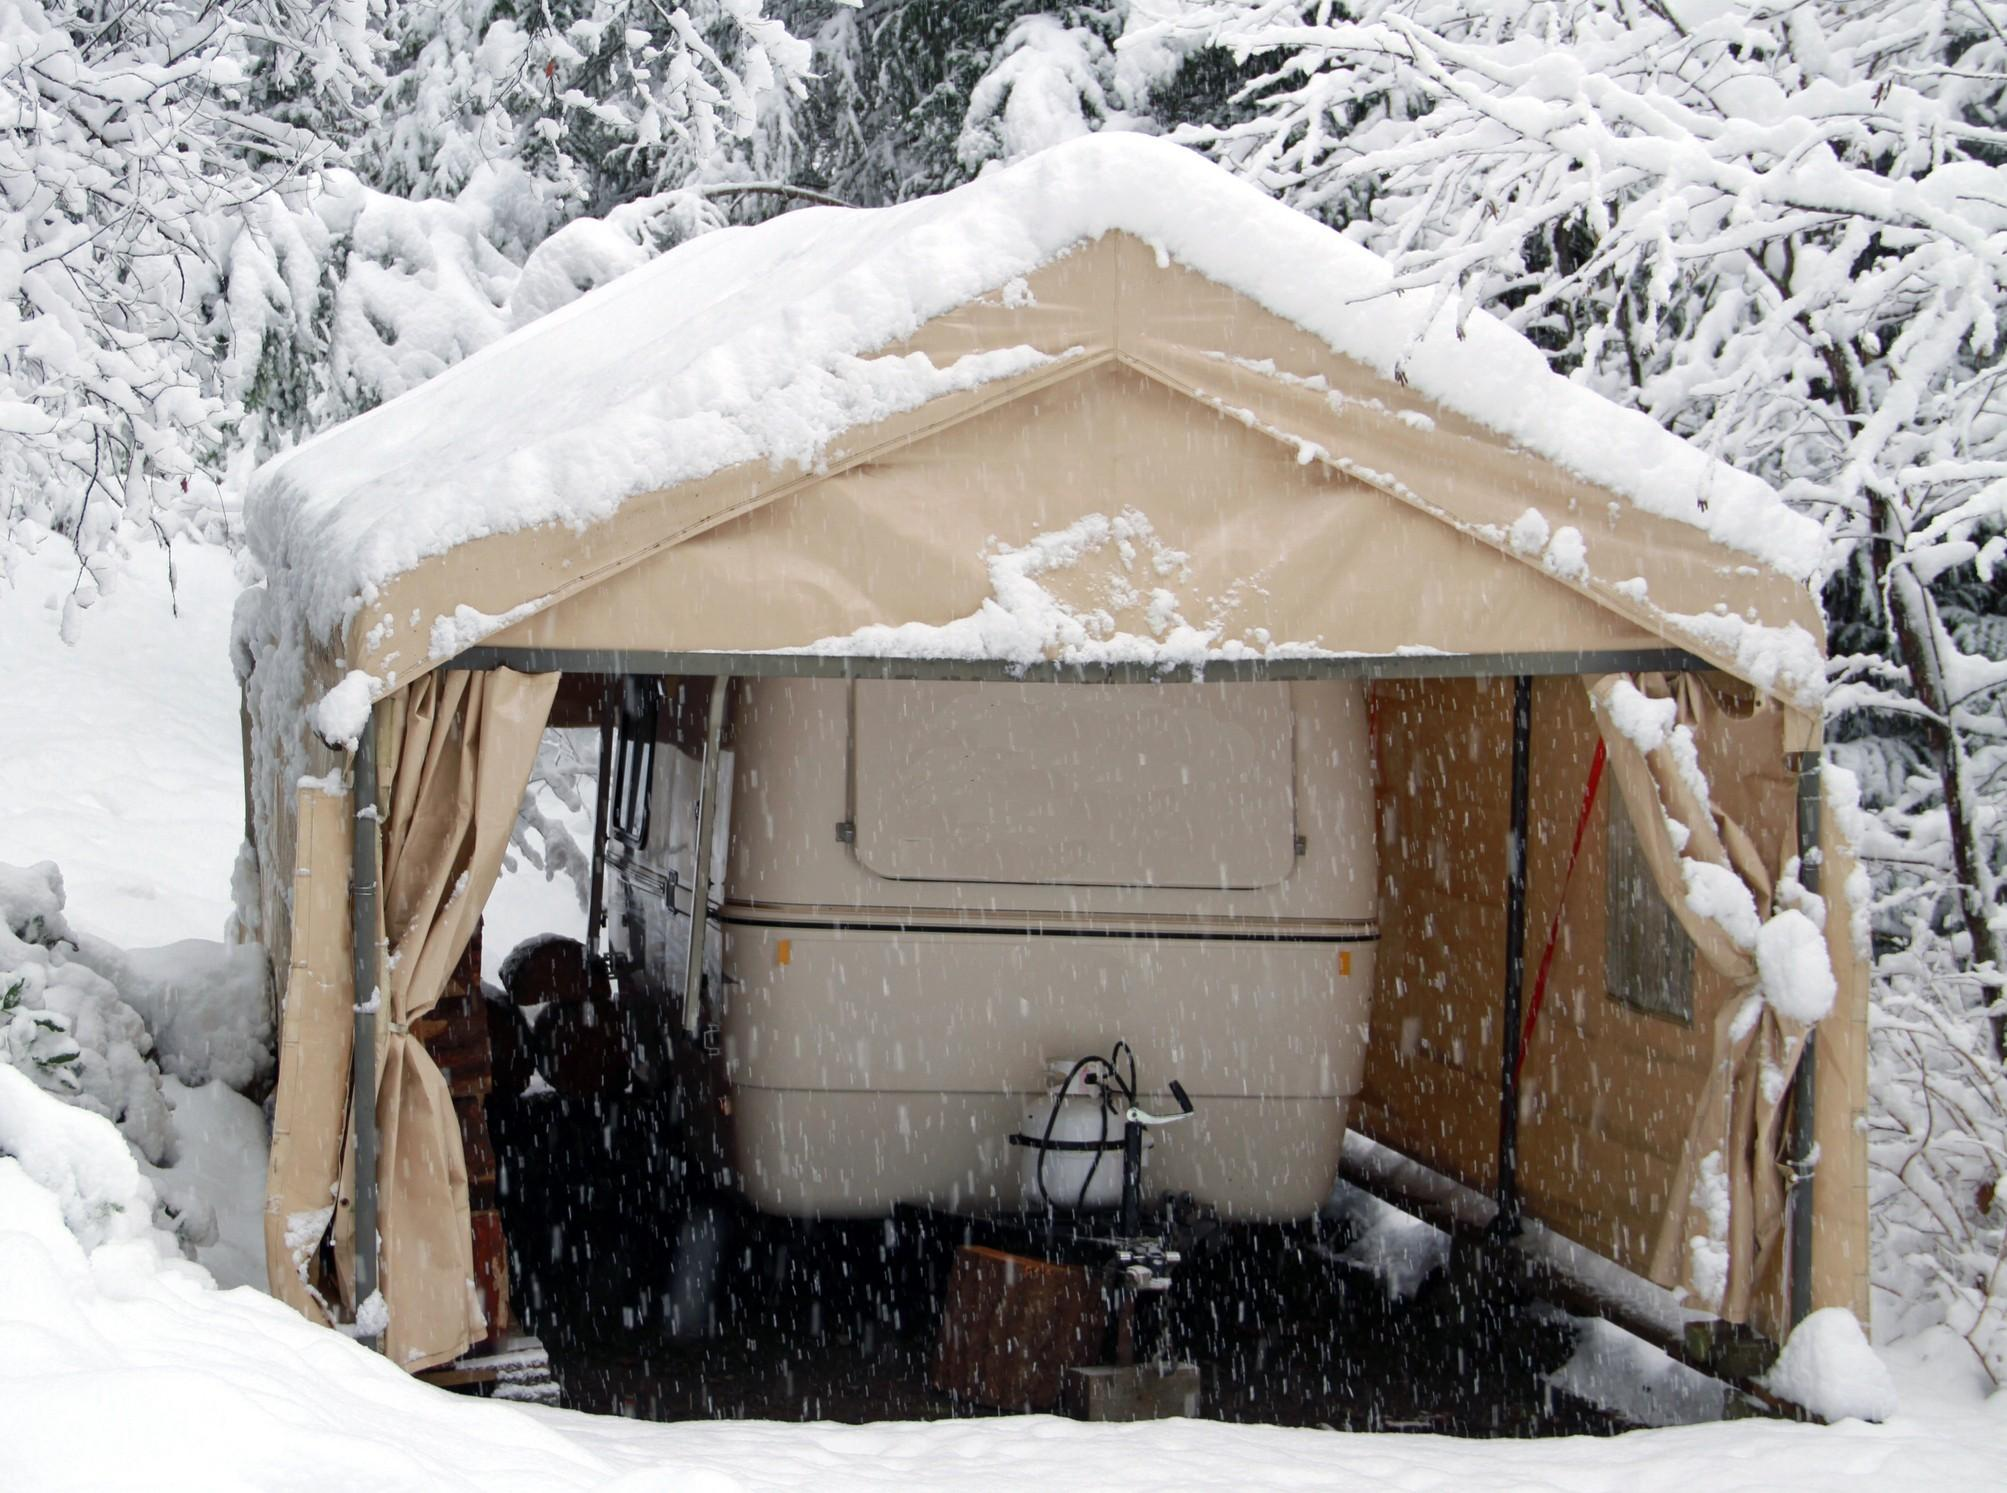 Winterize Your RV or Learn to RV in the Winter?